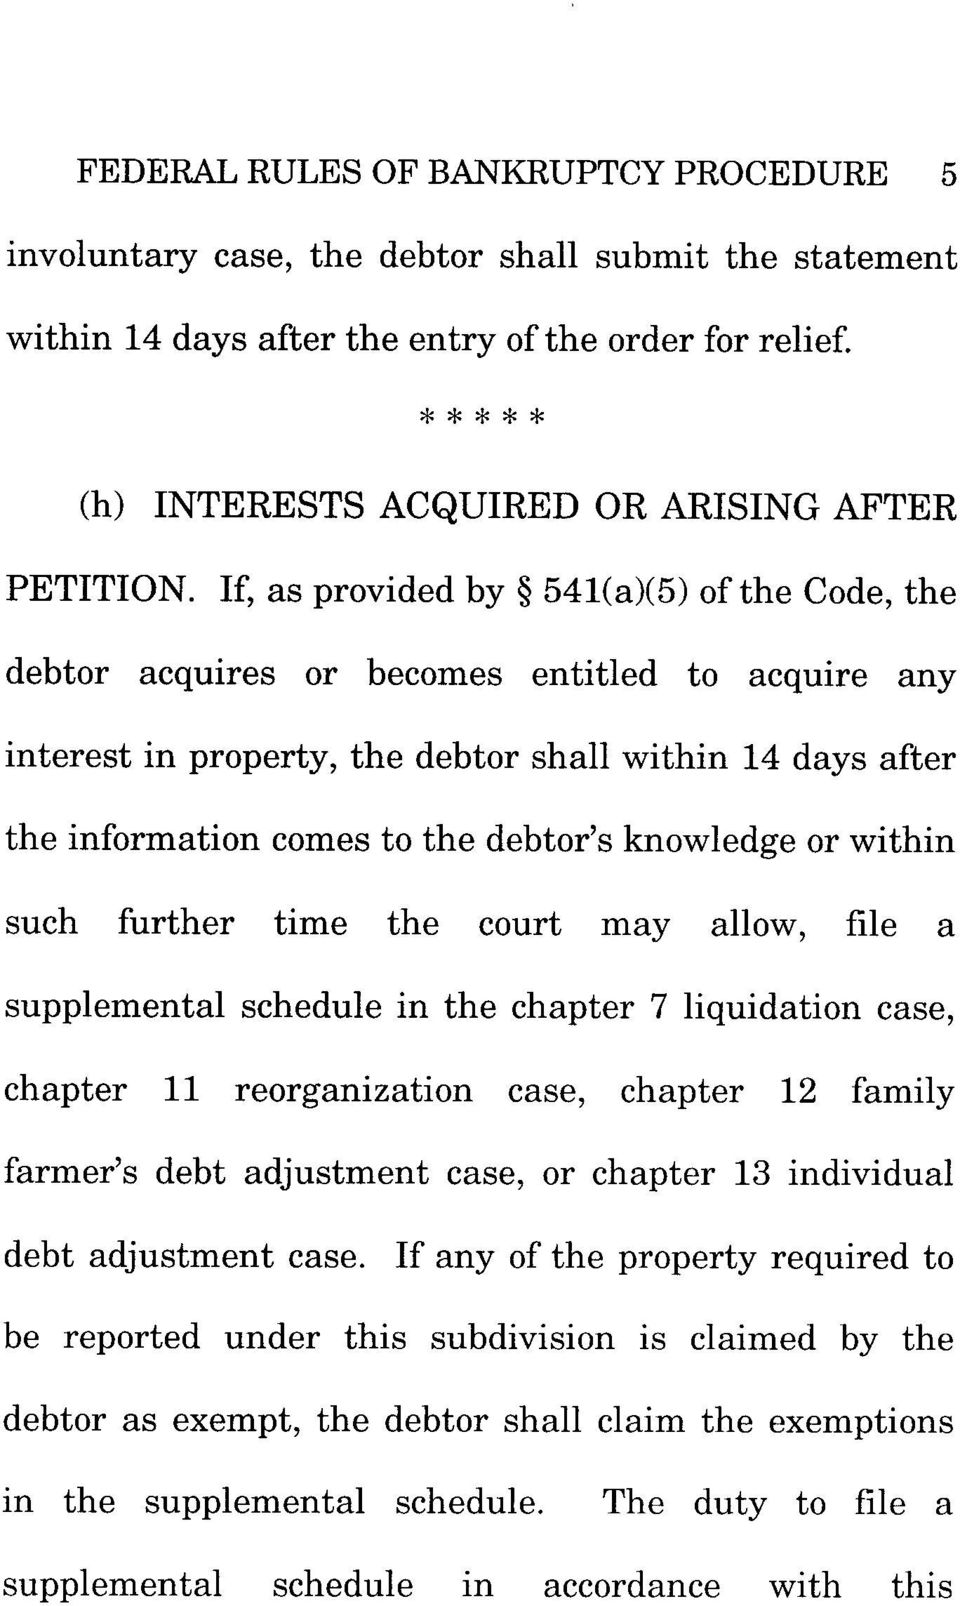 If, as provided by 541(a)(5) of the Code, the debtor acquires or becomes entitled to acquire any interest in property, the debtor shall within 14 days after the information comes to the debtor's